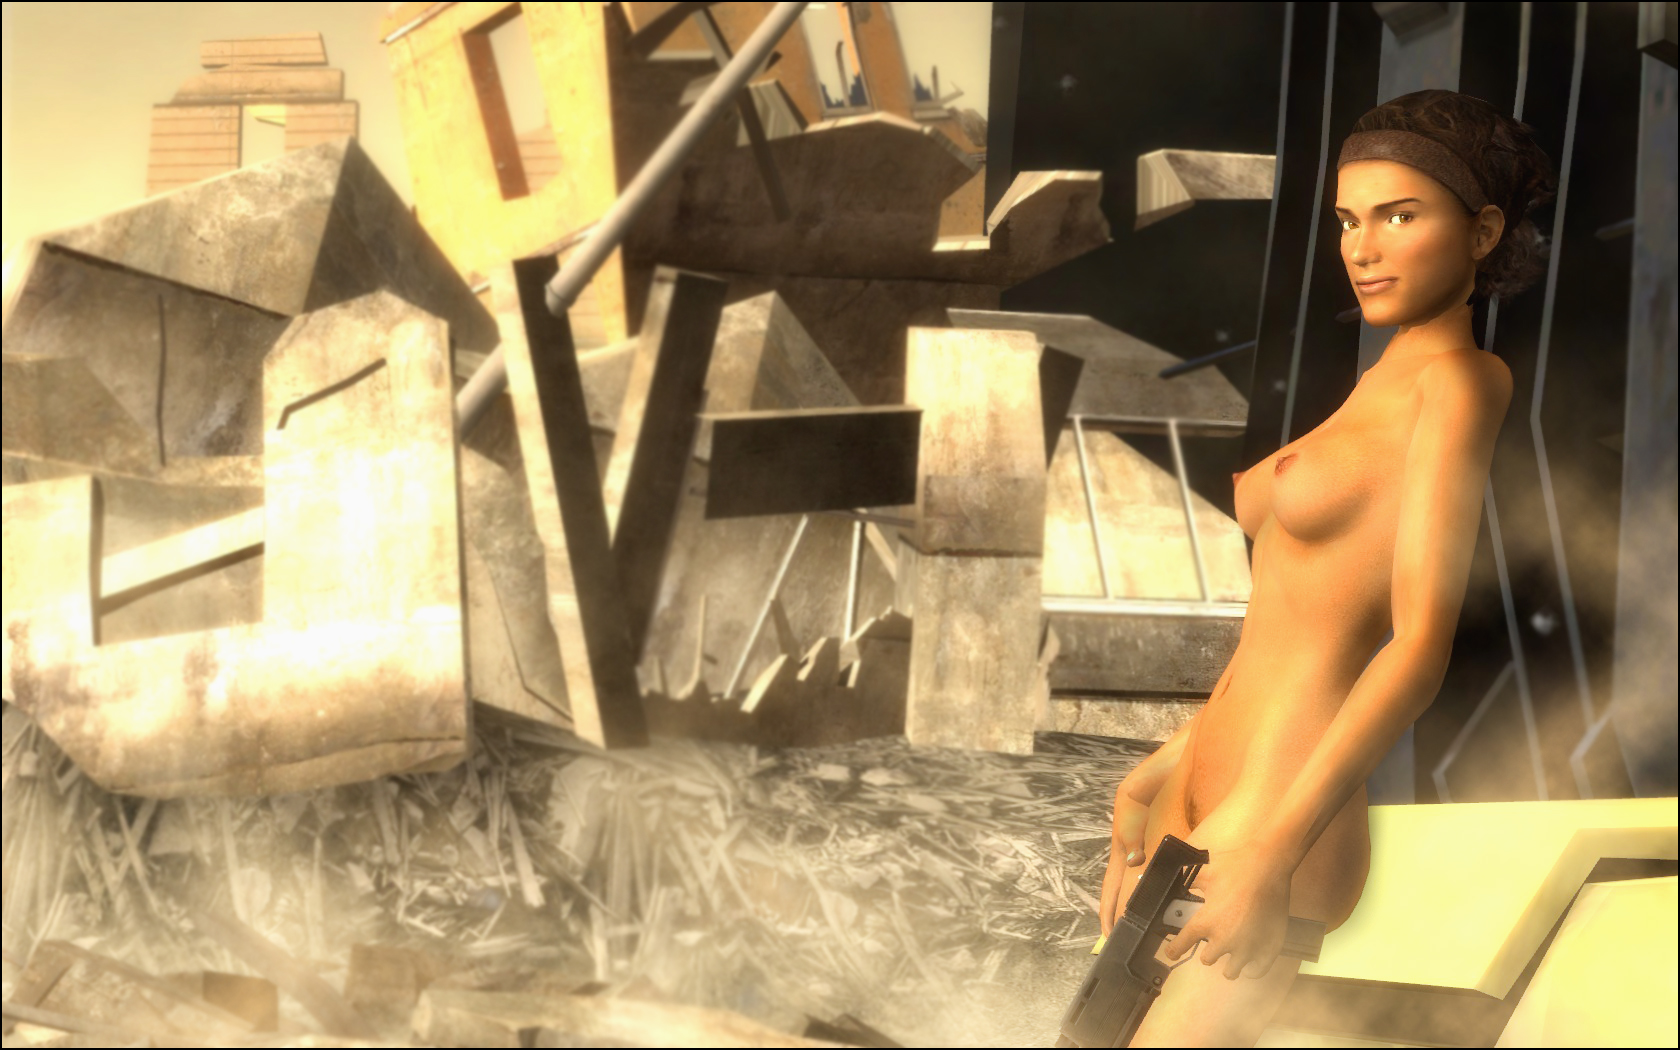 Half life 2 people naked adult image